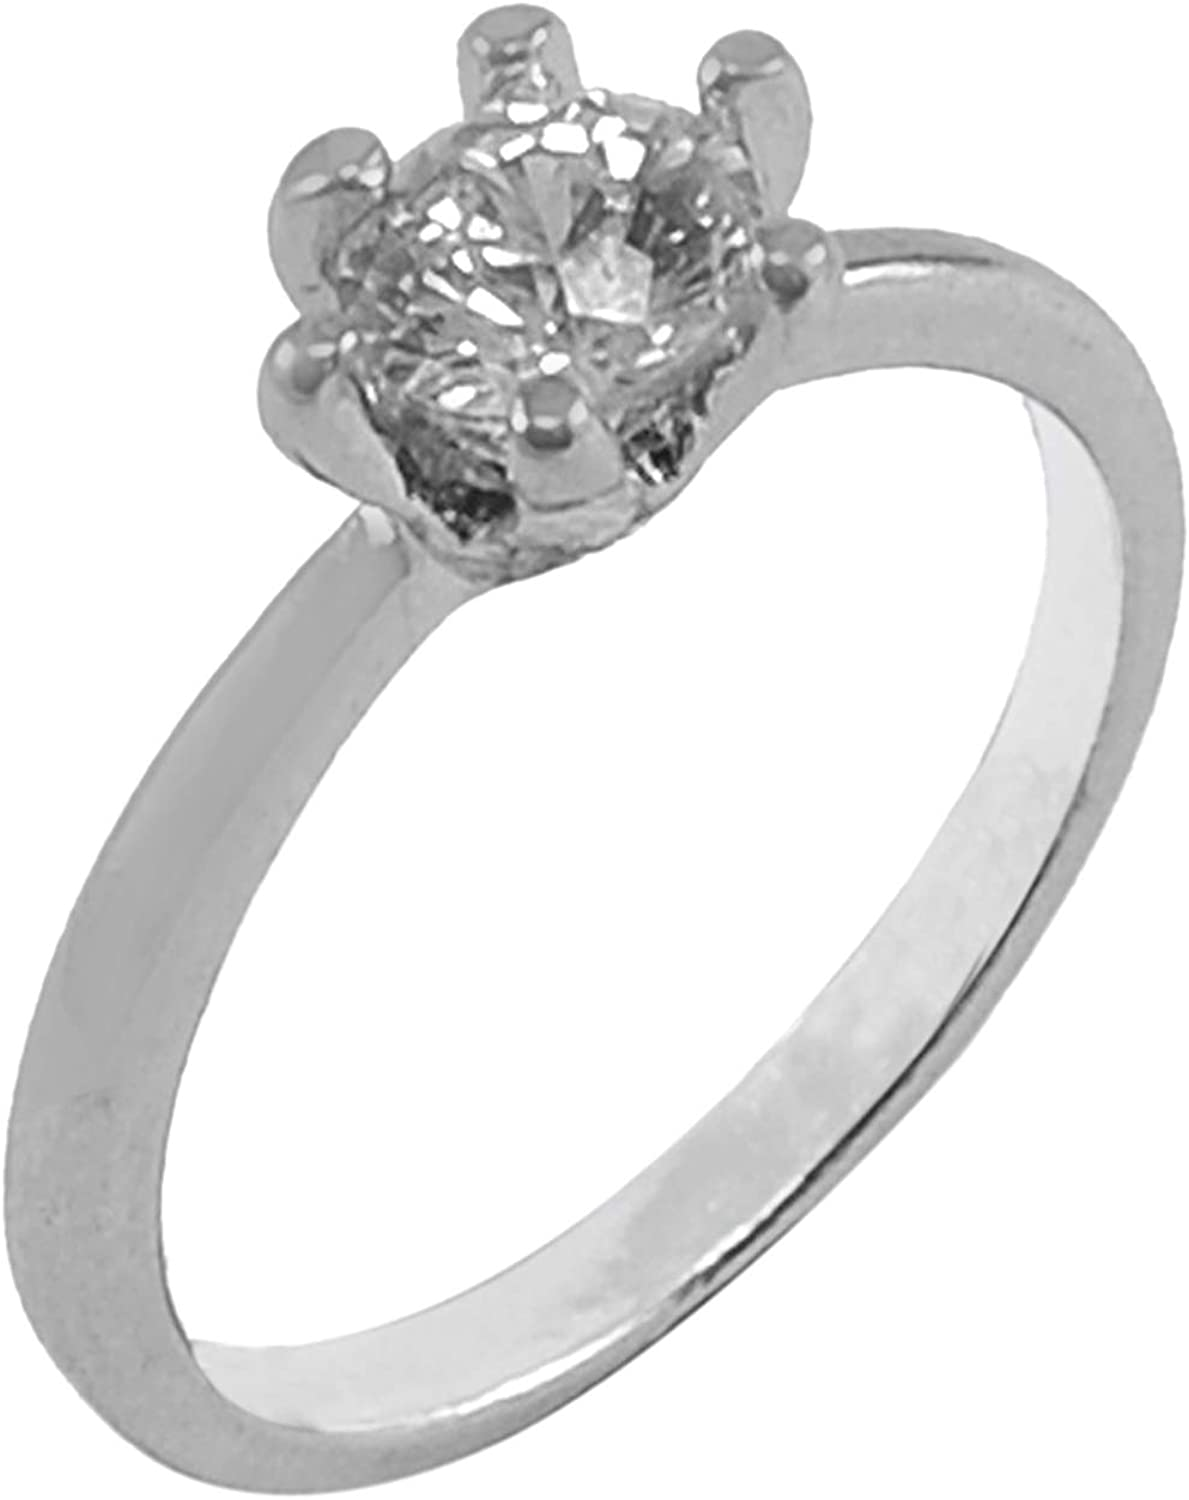 Silvestoo Jaipur Cubic Zircon 925 Silver Plated Ring Size 7.75 PG-127799